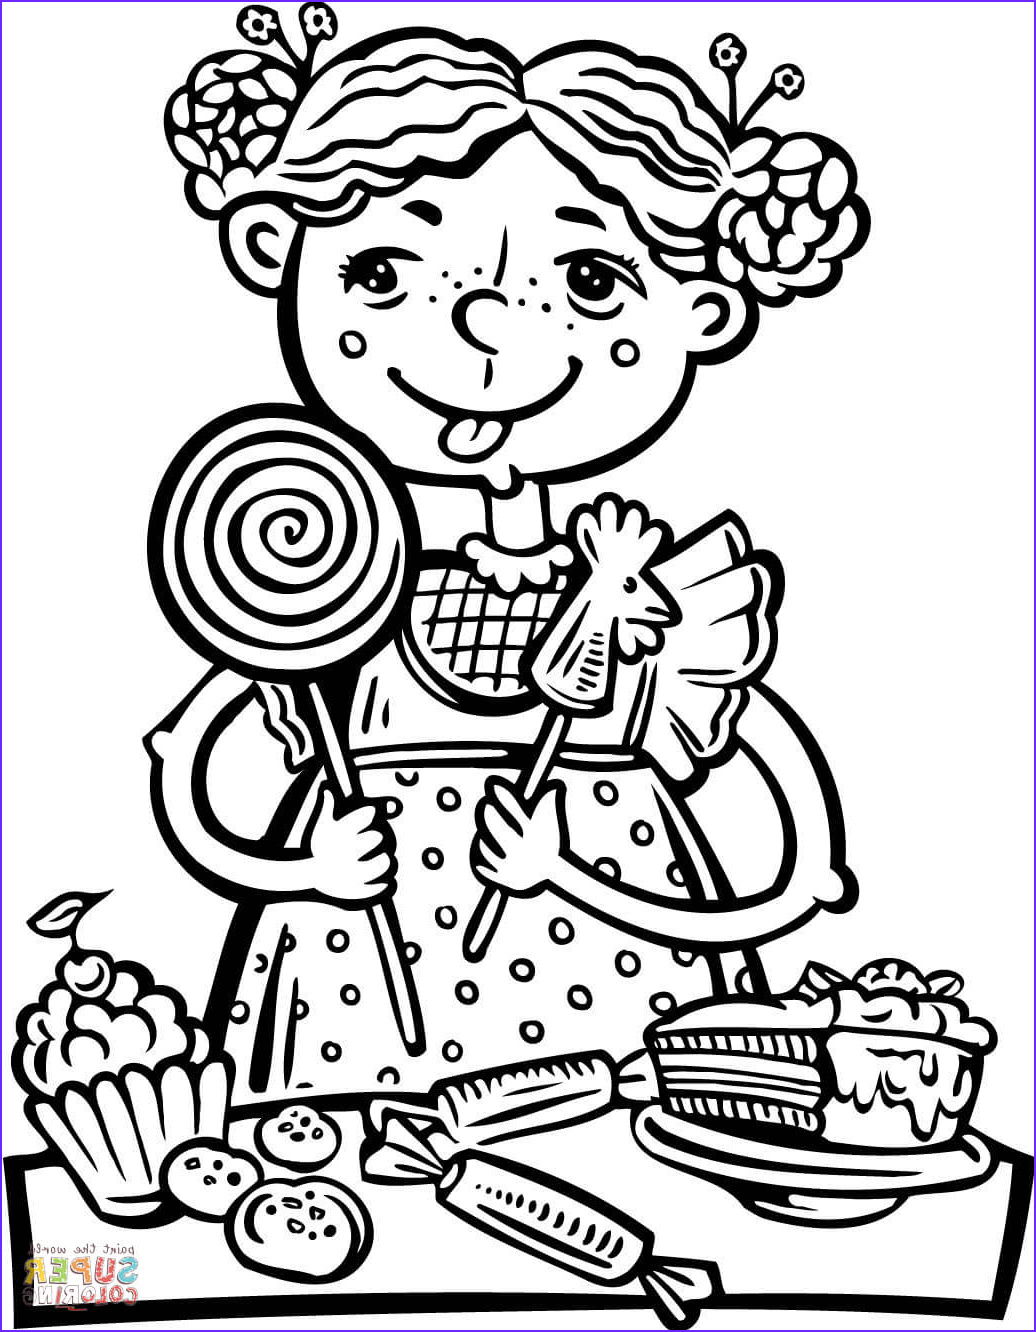 Sweets Coloring Pages New Collection Candy Drawing at Getdrawings